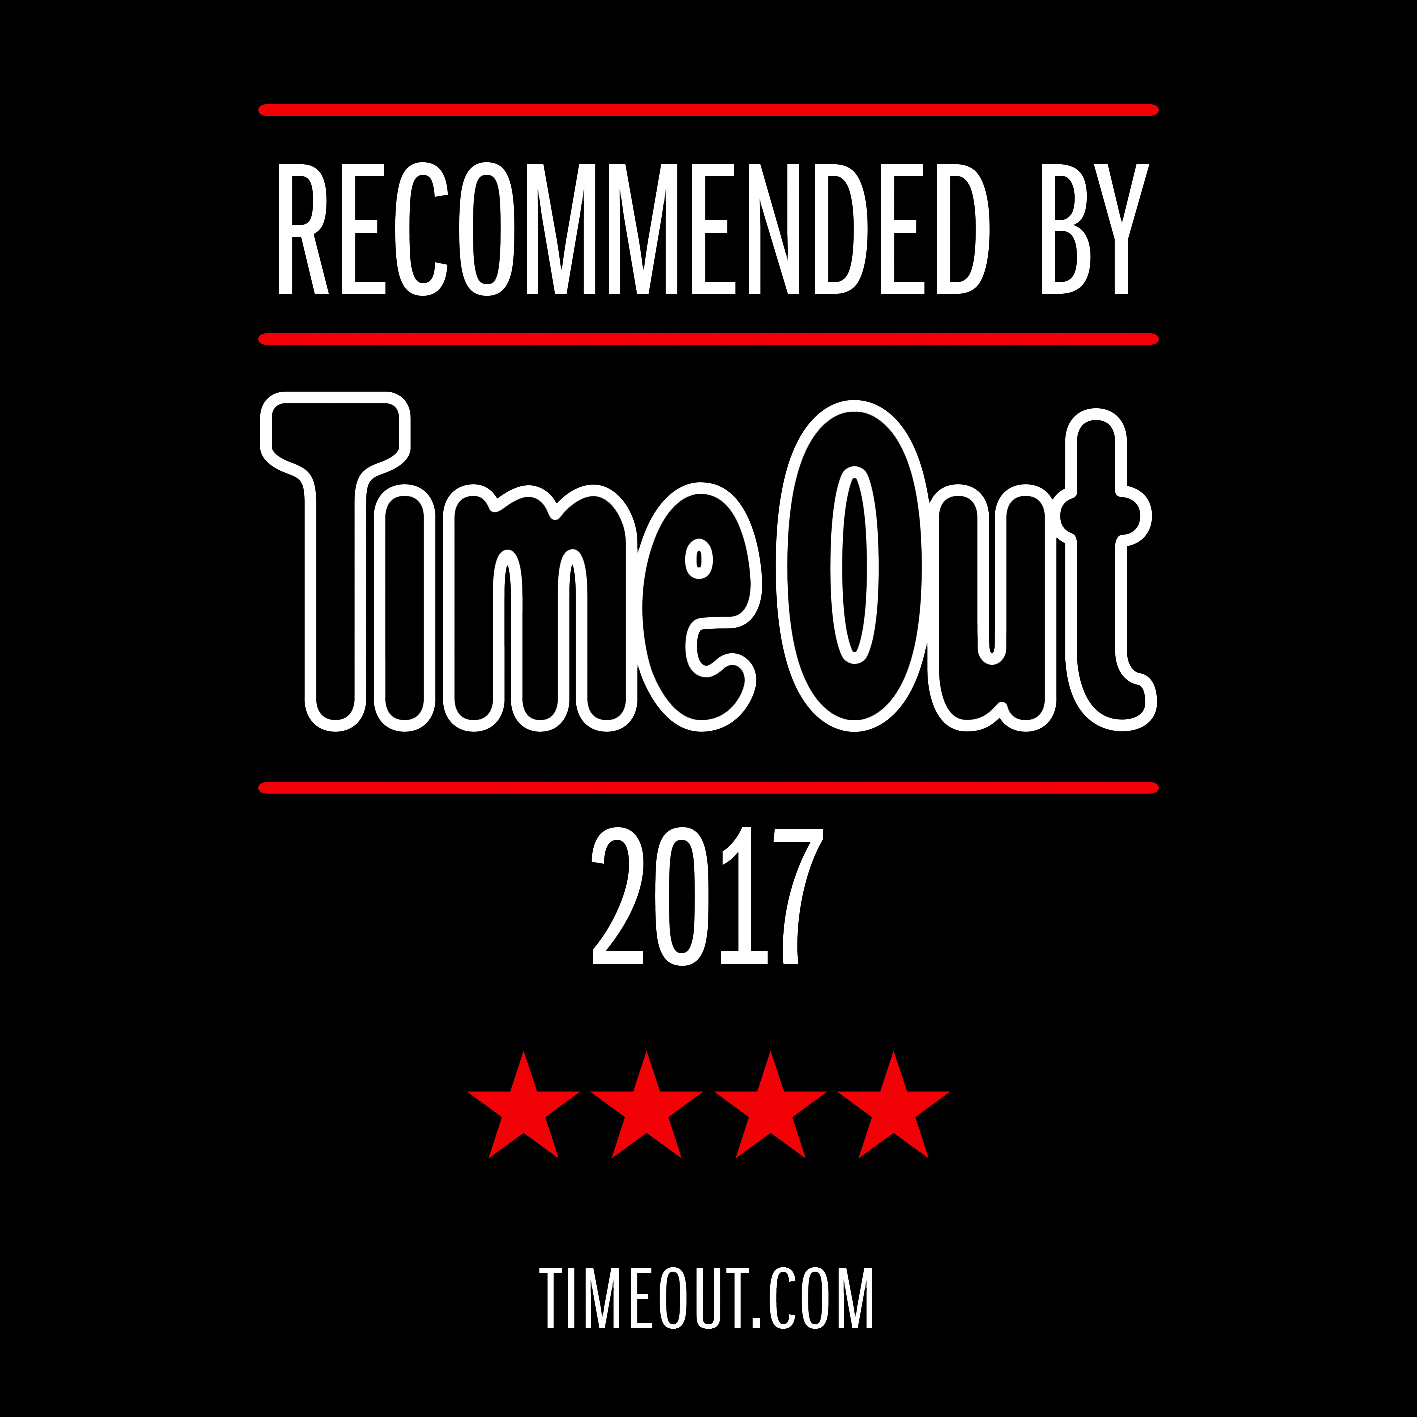 Recommended by TimeOut